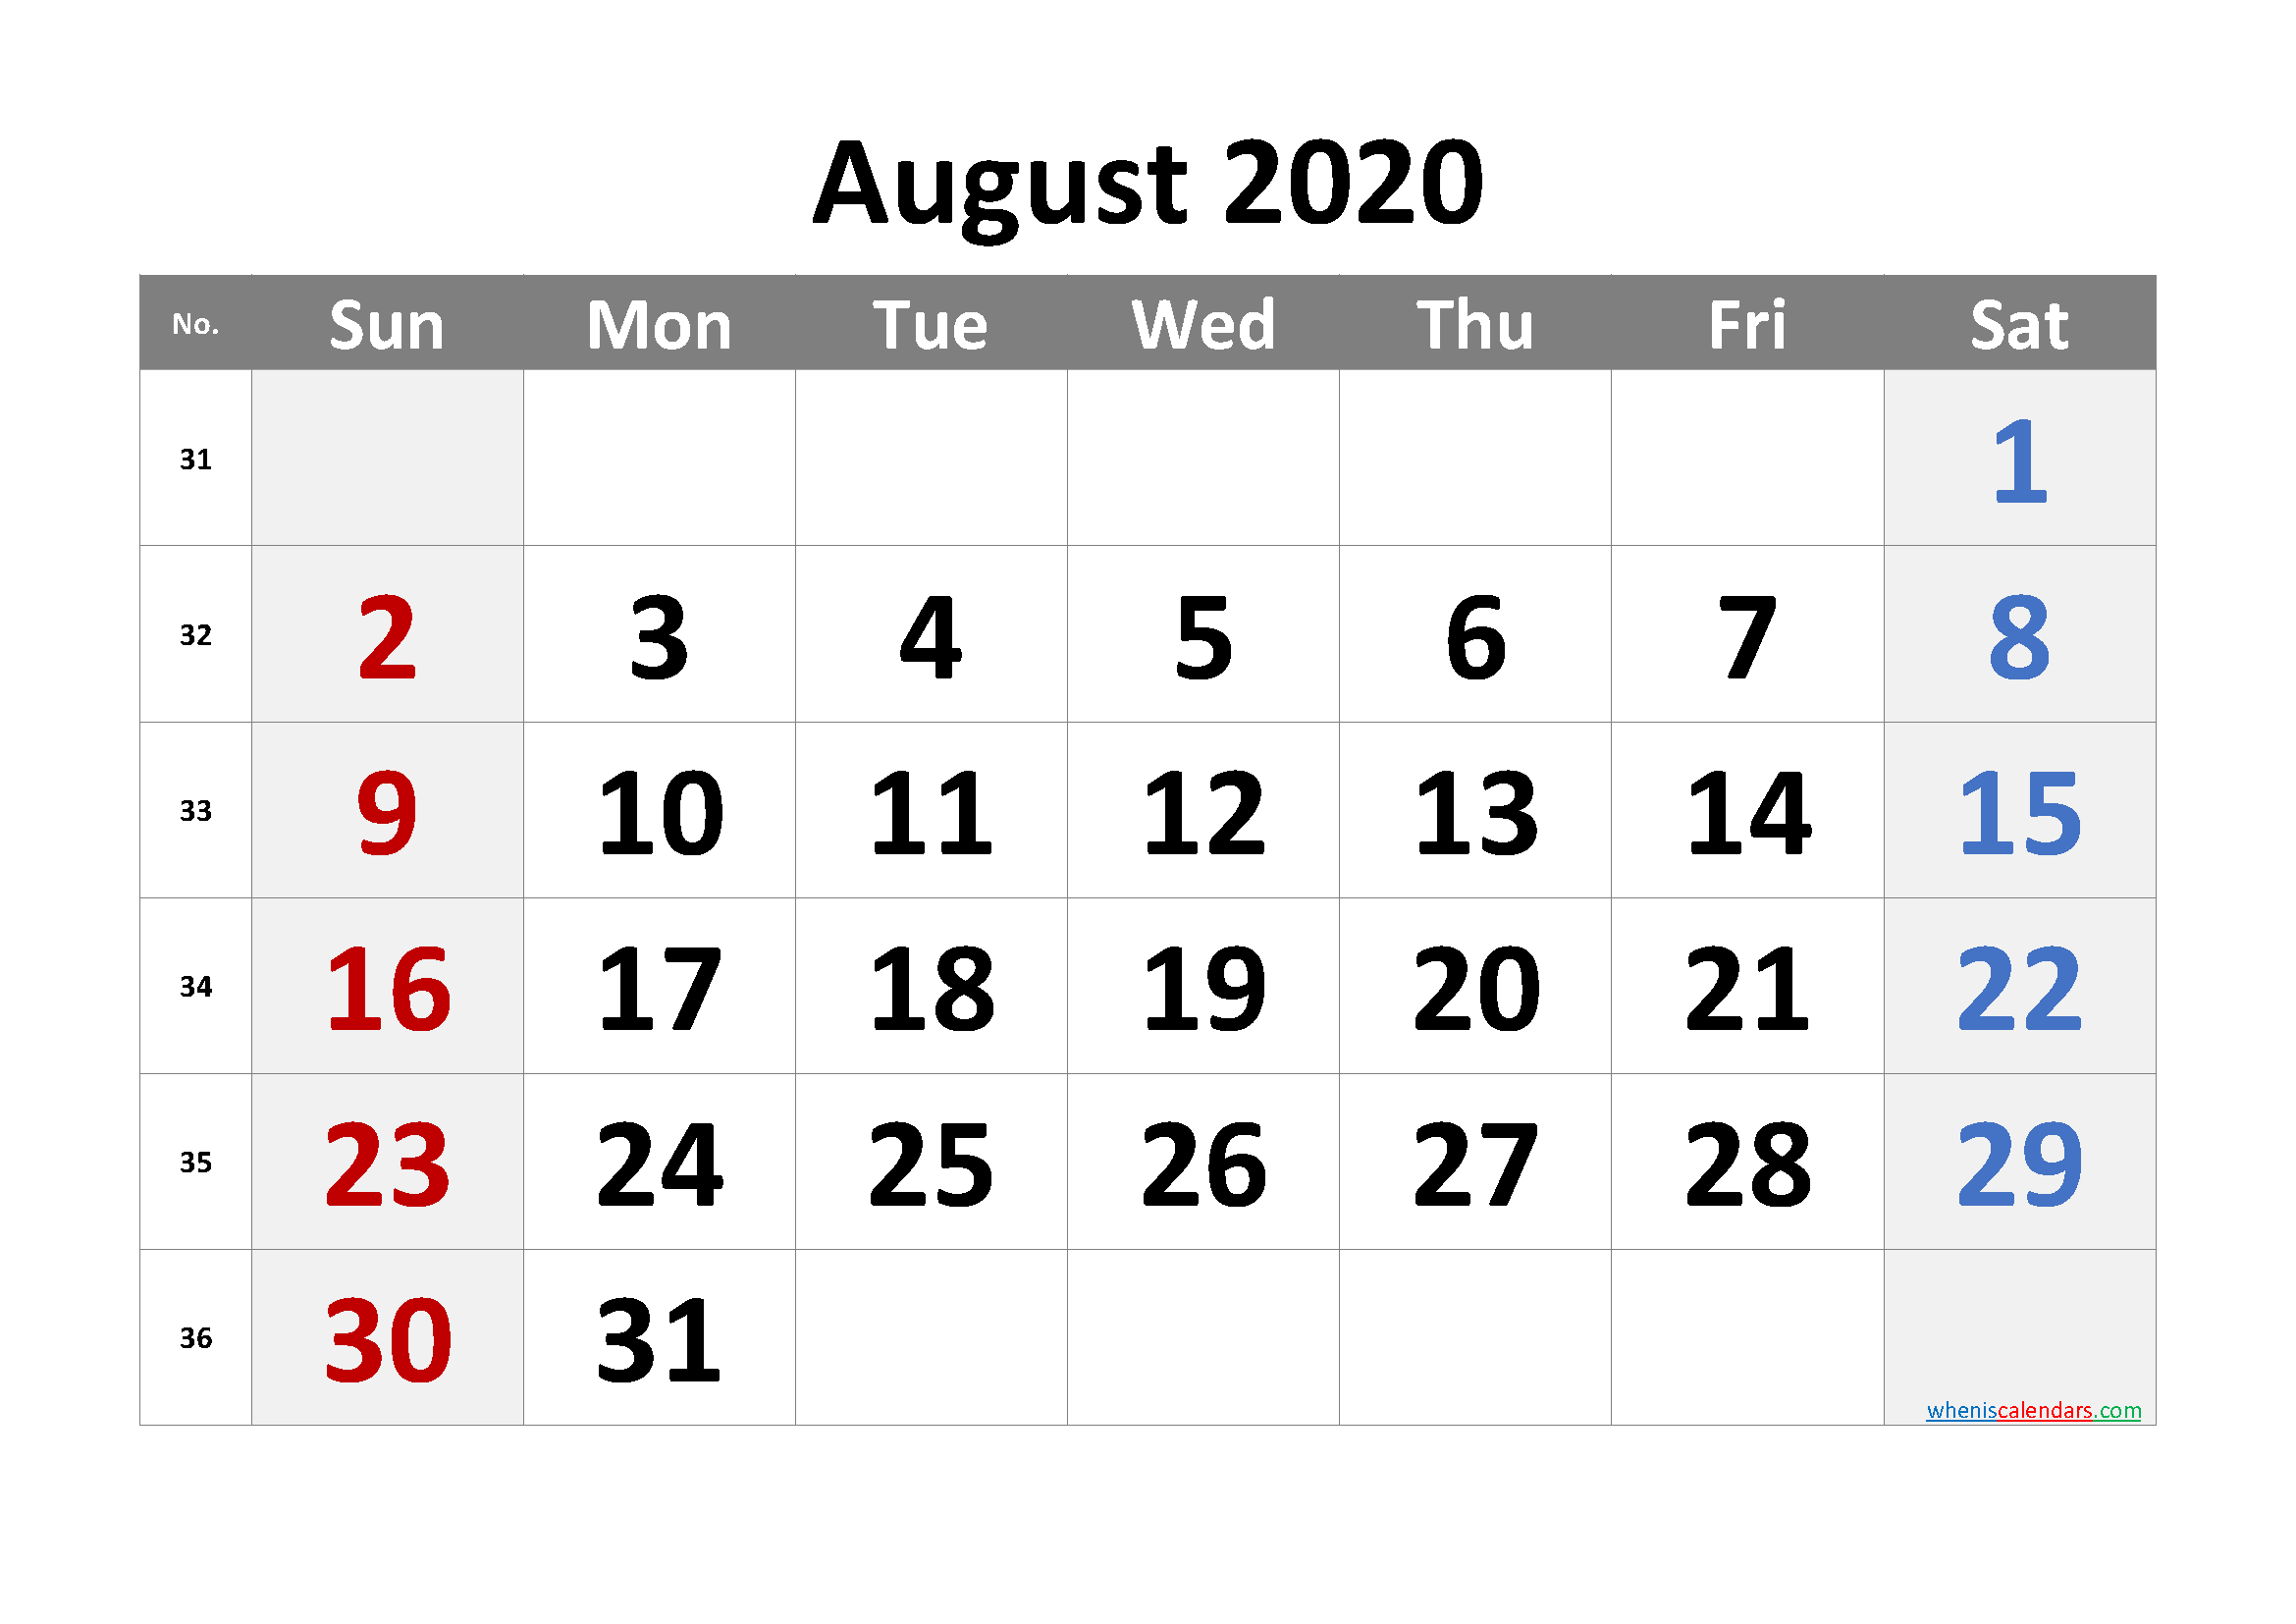 August 2020 Printable Calendar with Week Numbers